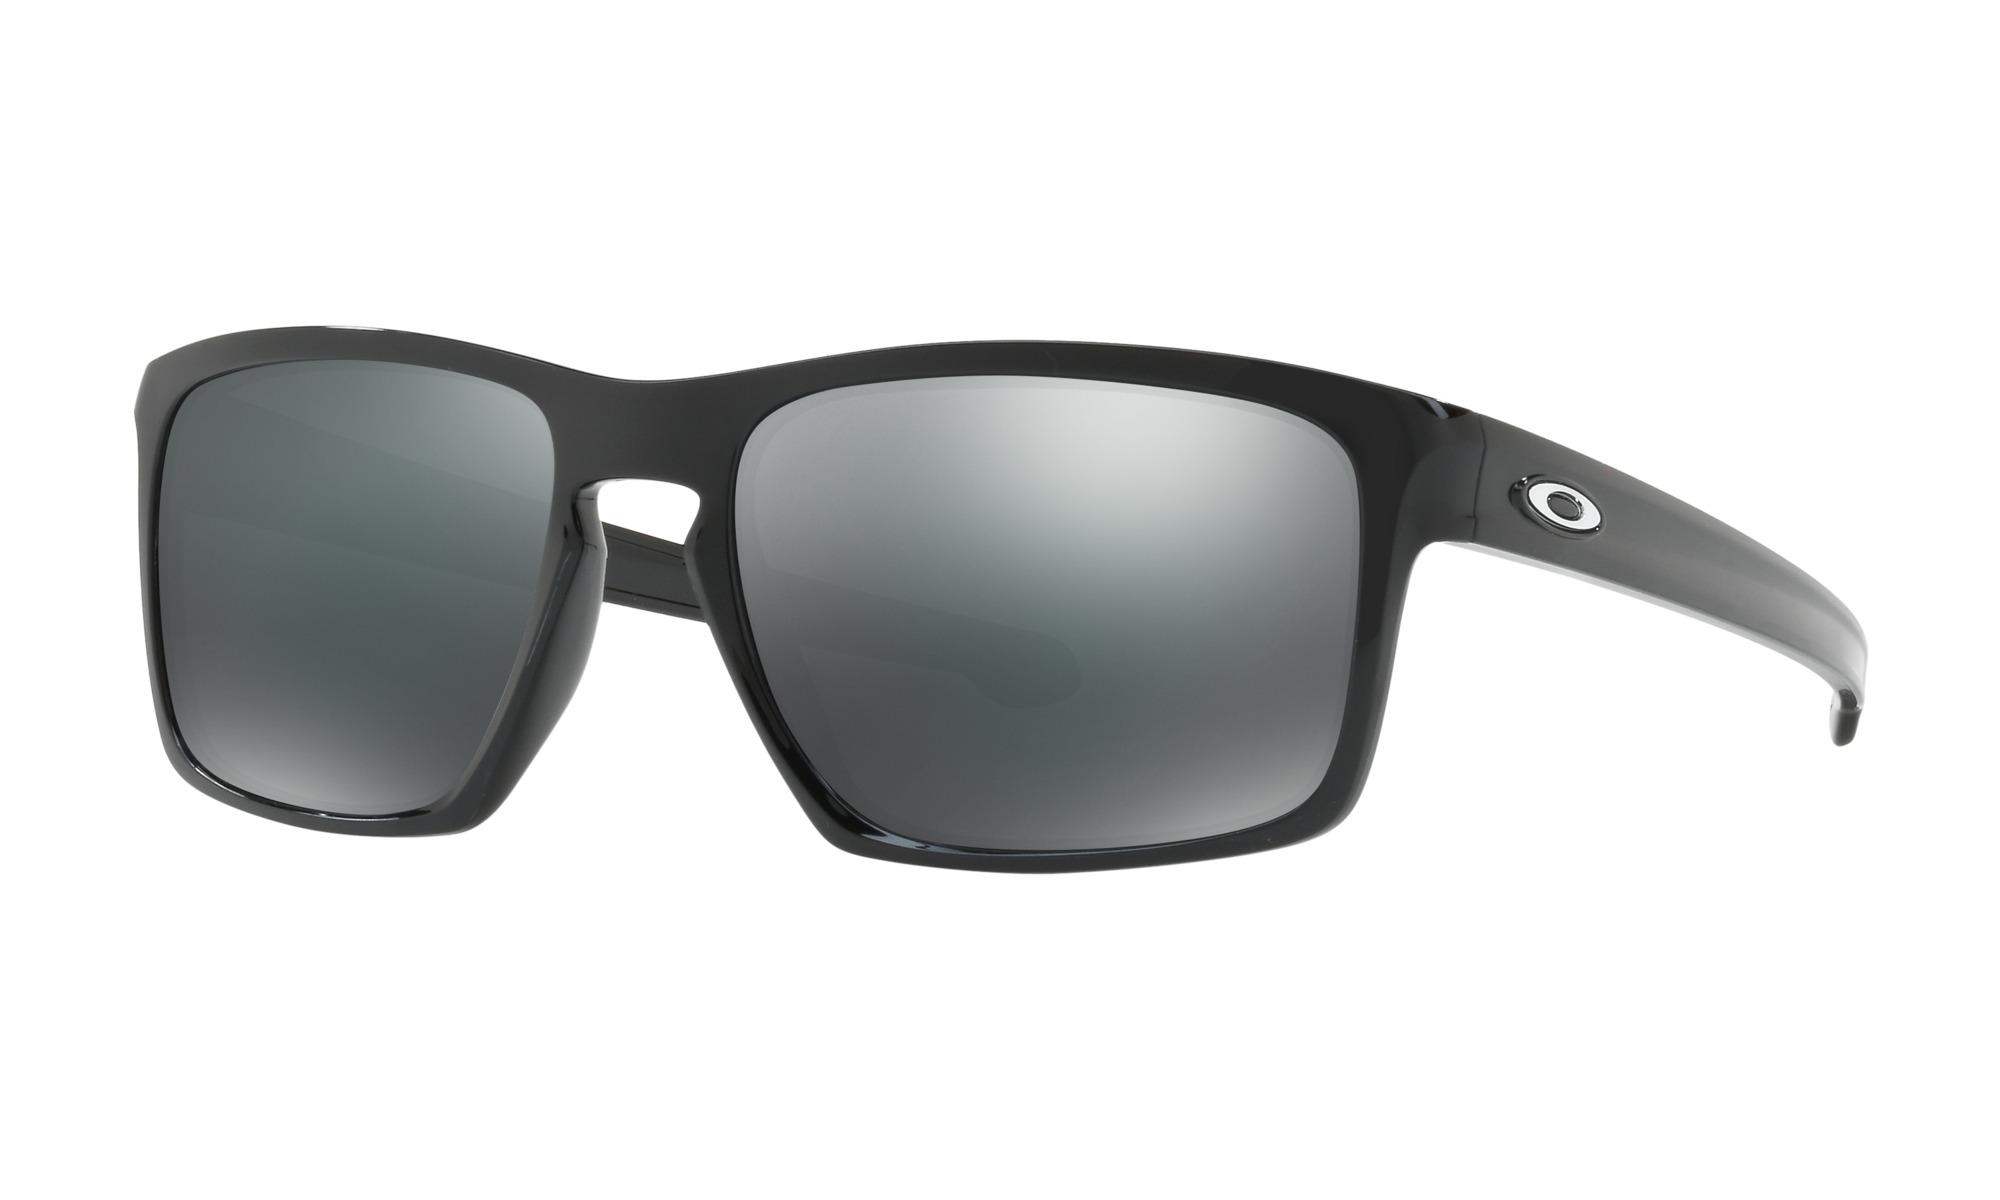 Oakley Sliver Driving Sunglasses